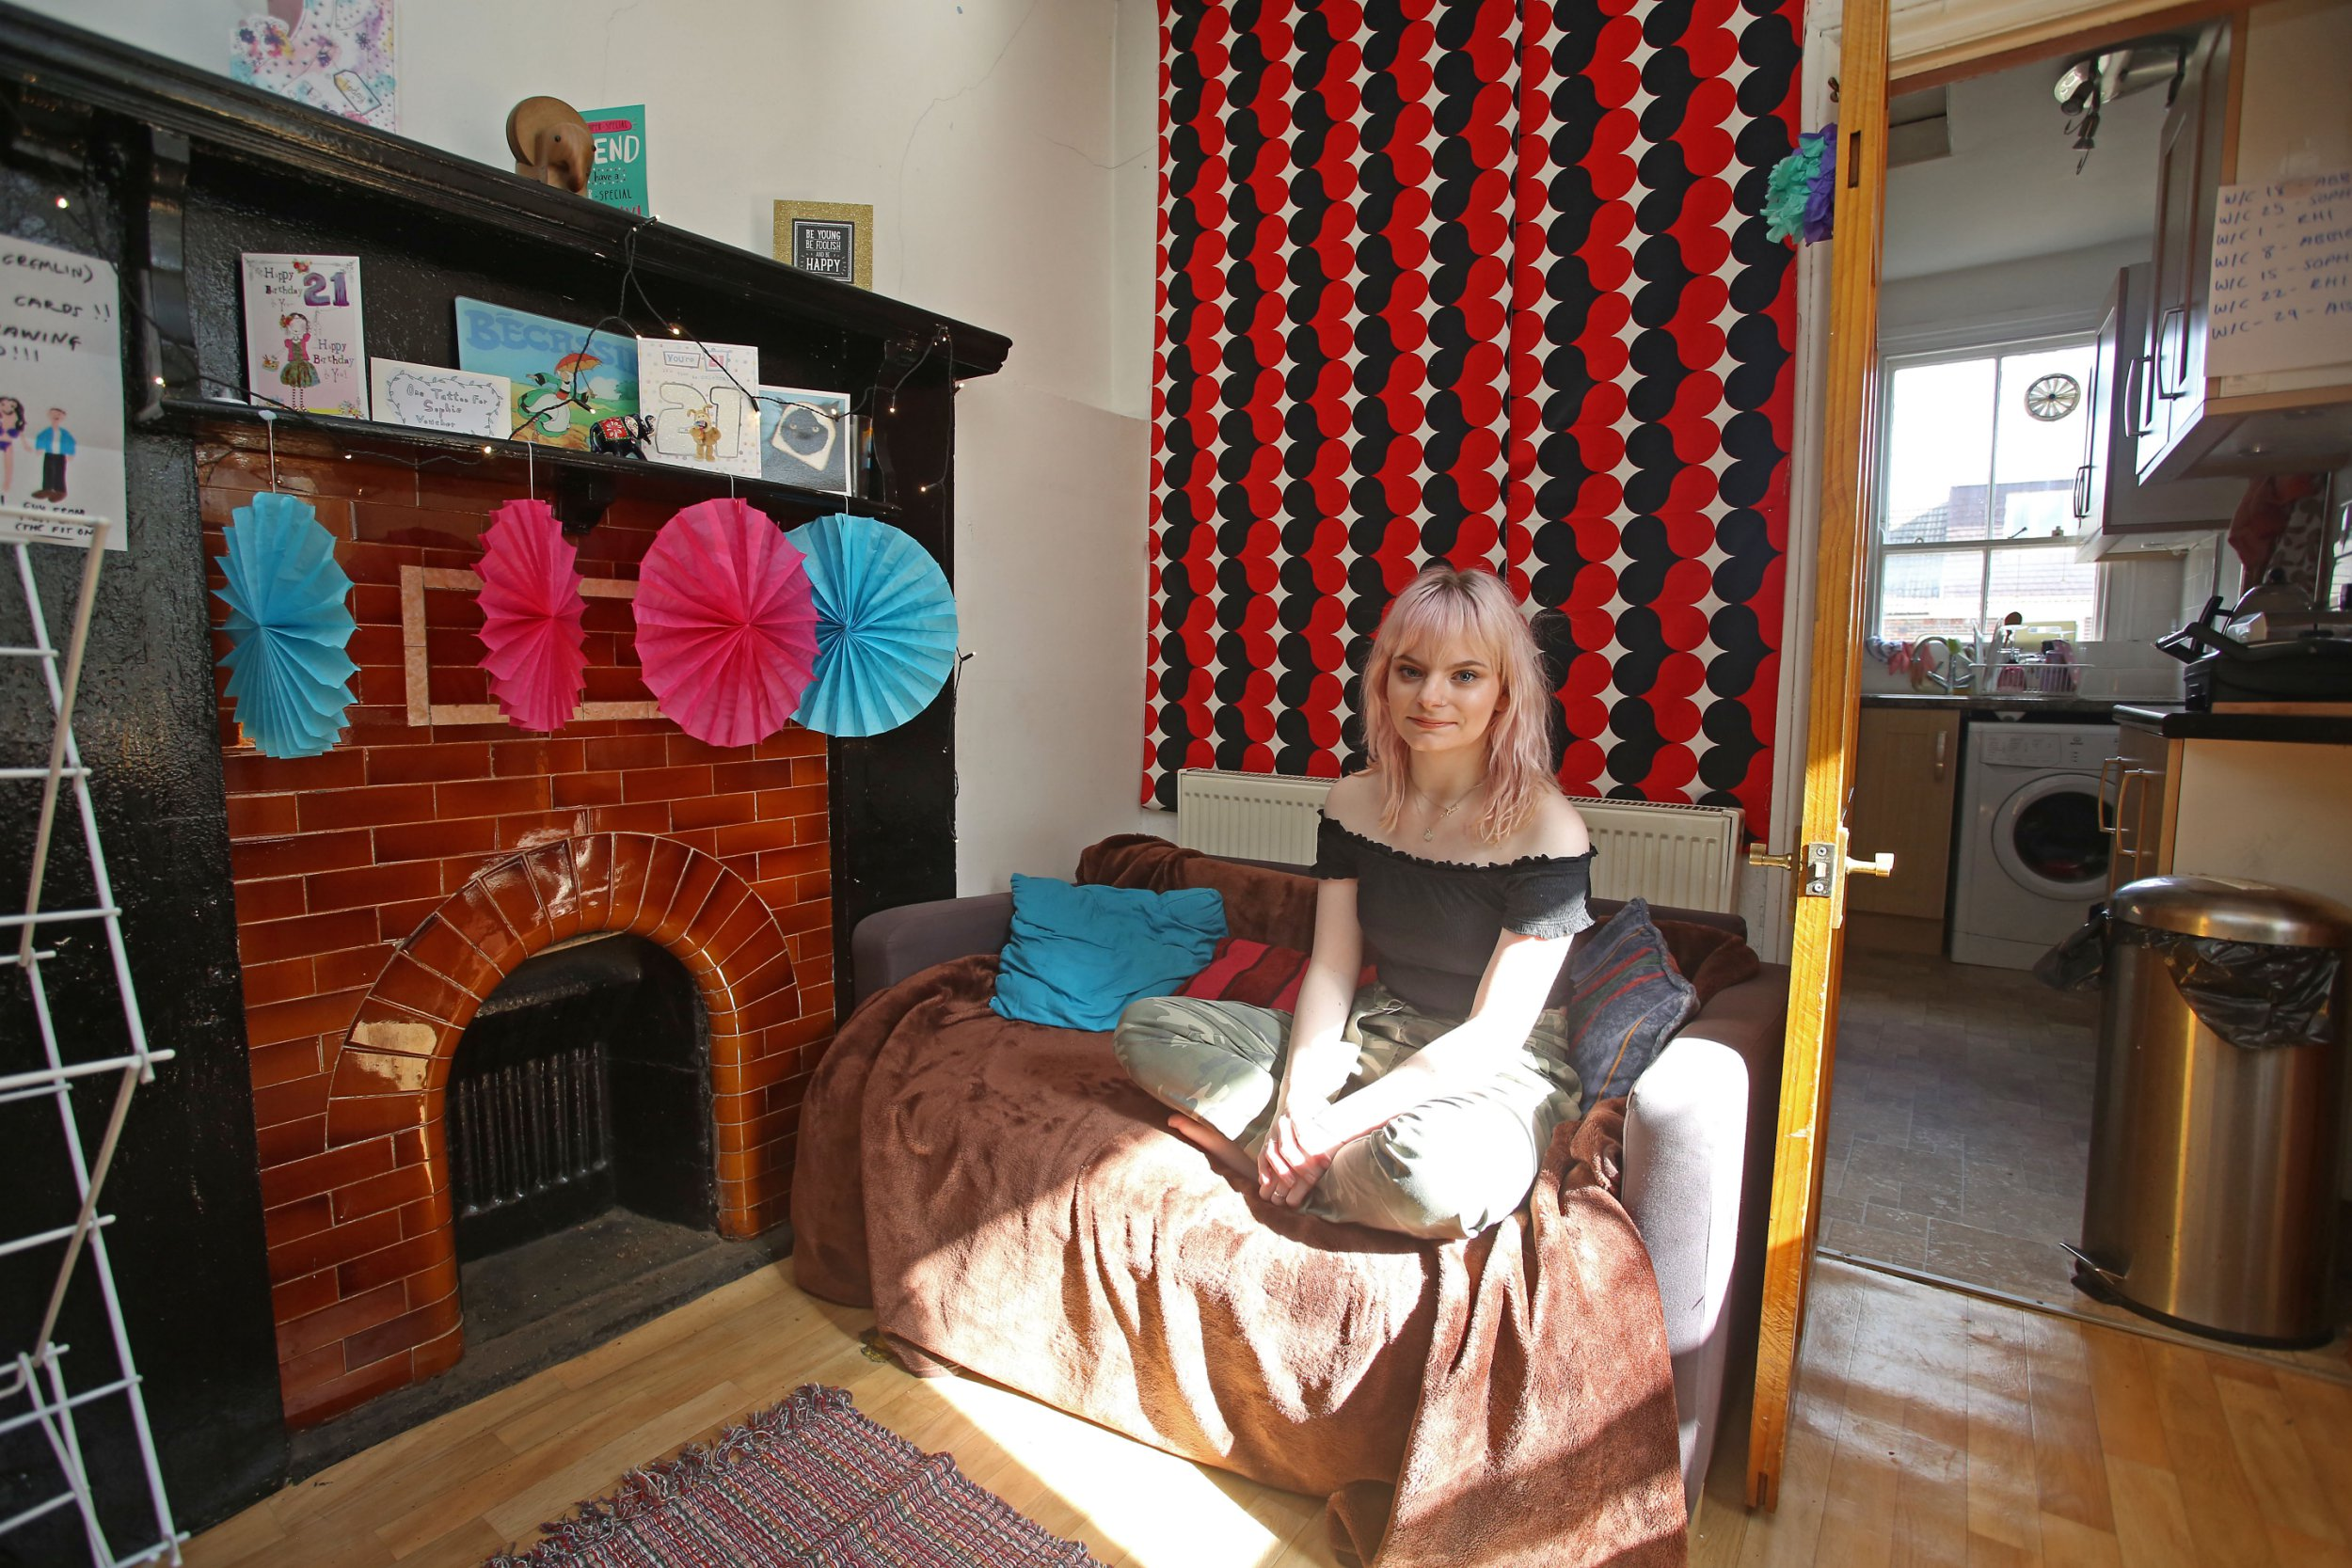 What I Rent: Abbie, £520 a month for a room in a three-bedroom flat in Manor House